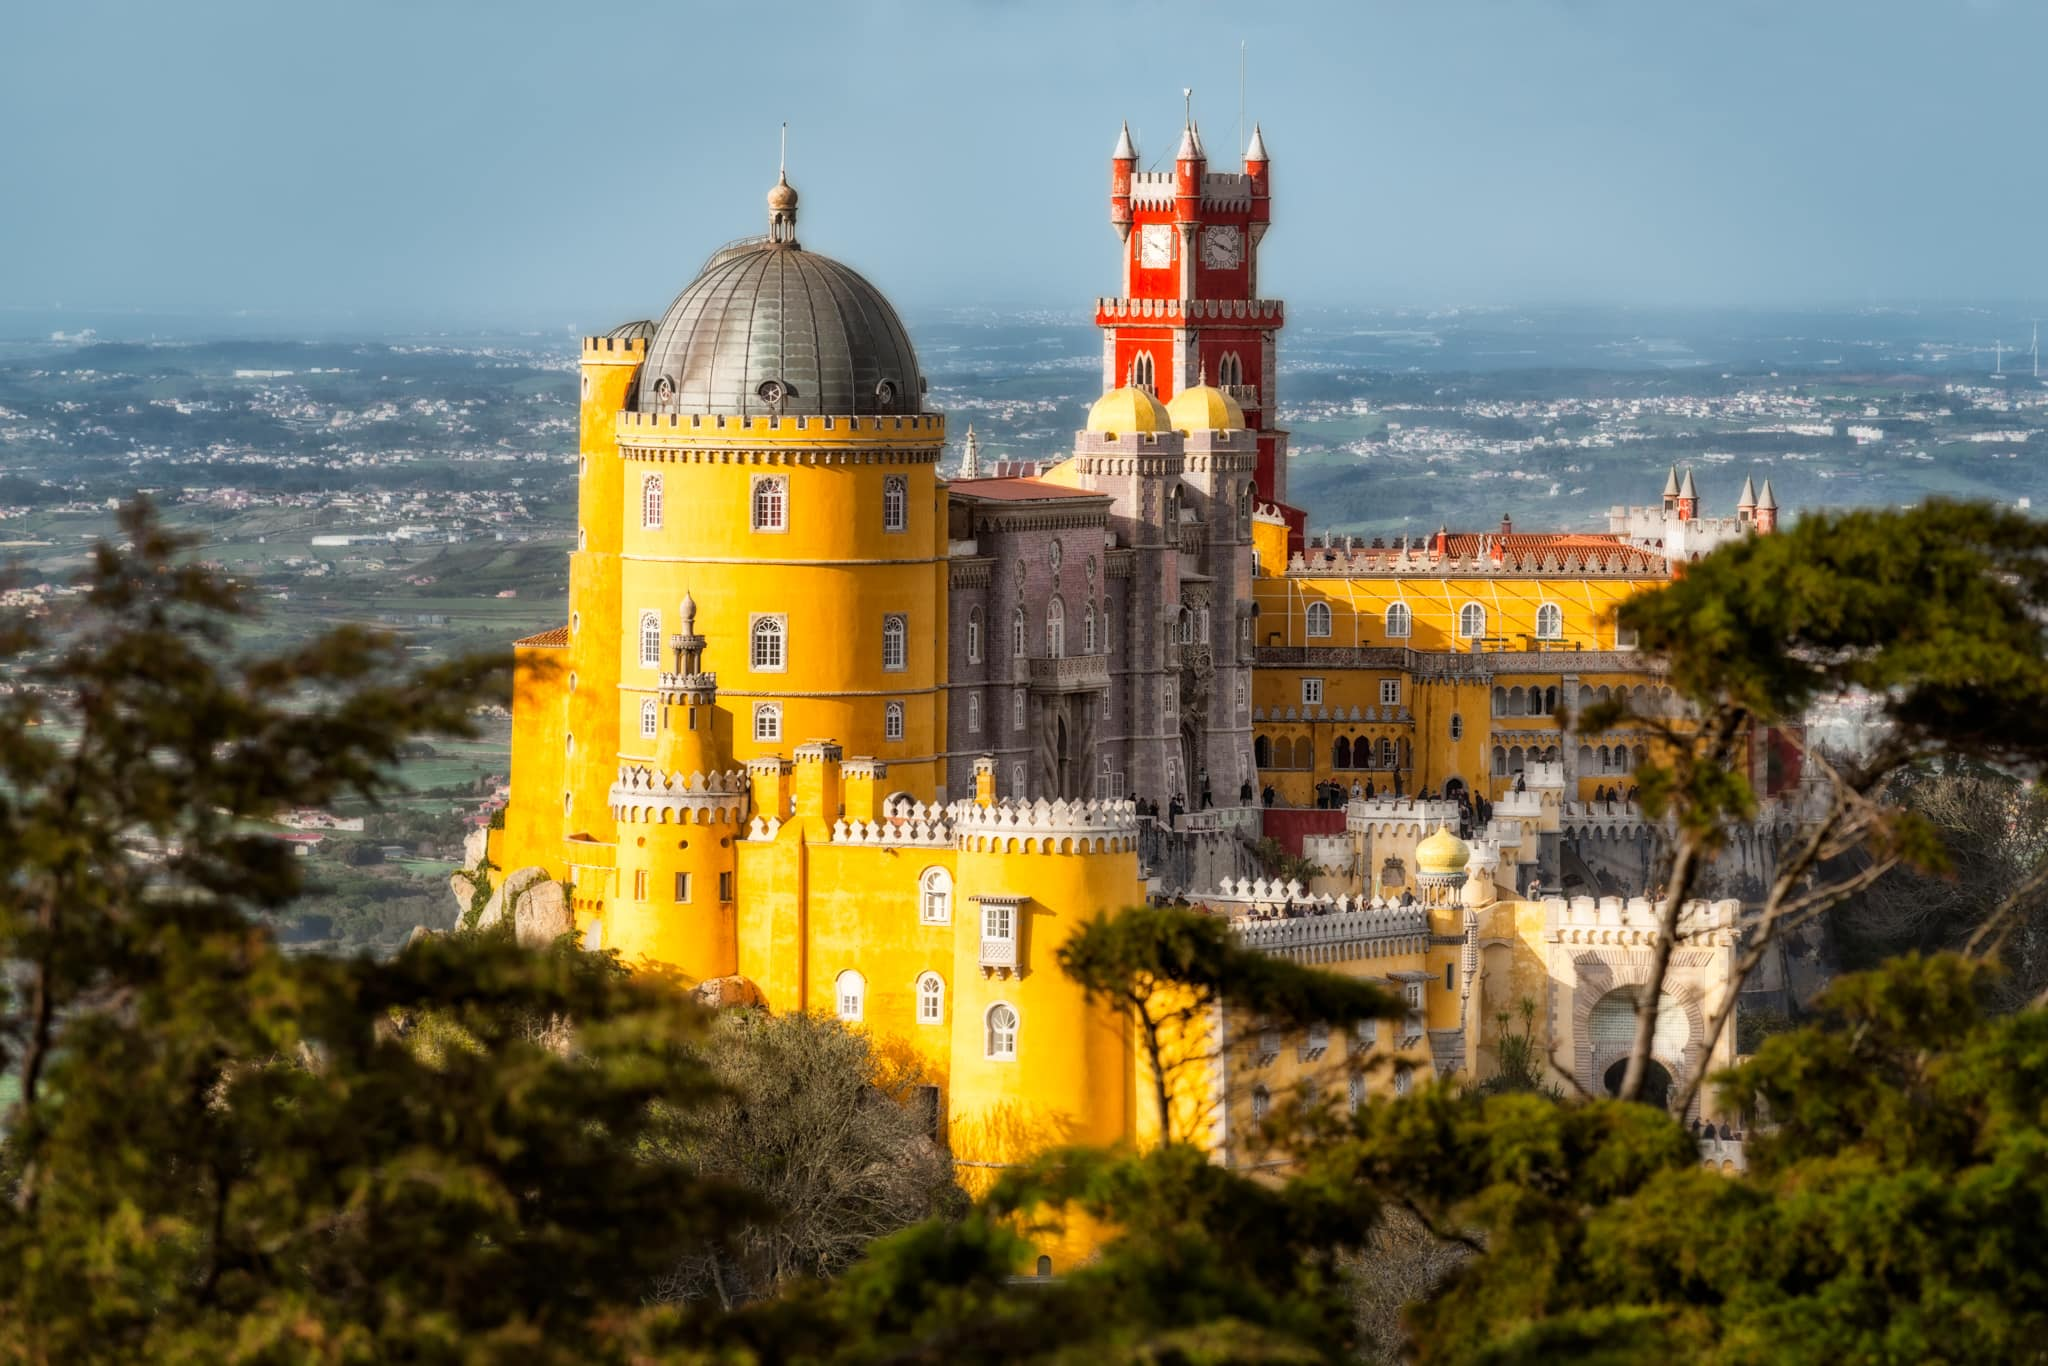 Palácio da Pena in Sintra Mountains, Portugal. Sunny day view from the park.